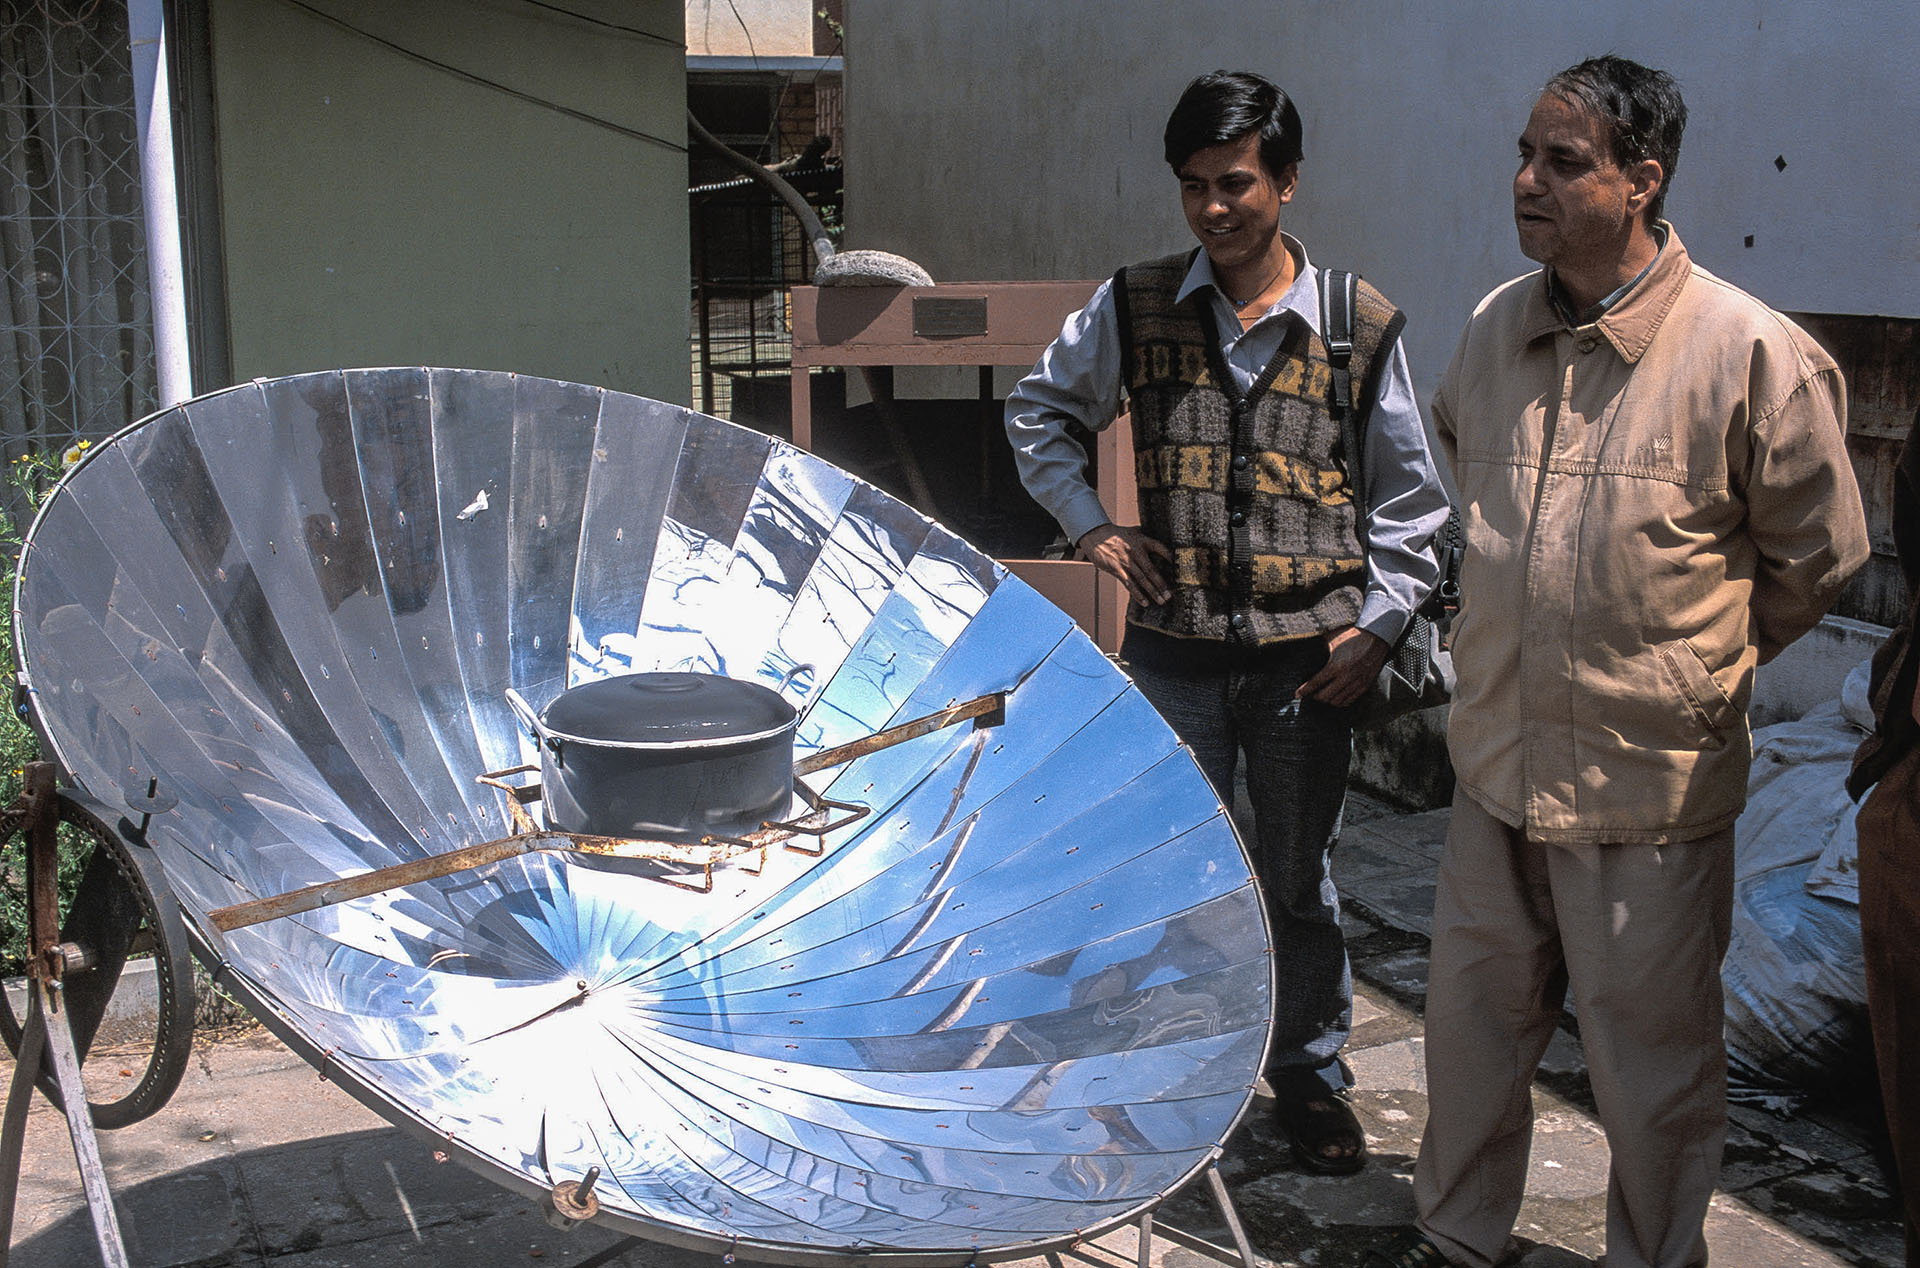 A parabolic solar cooker which reflects and concentrates the sun's radiant heat onto the pot